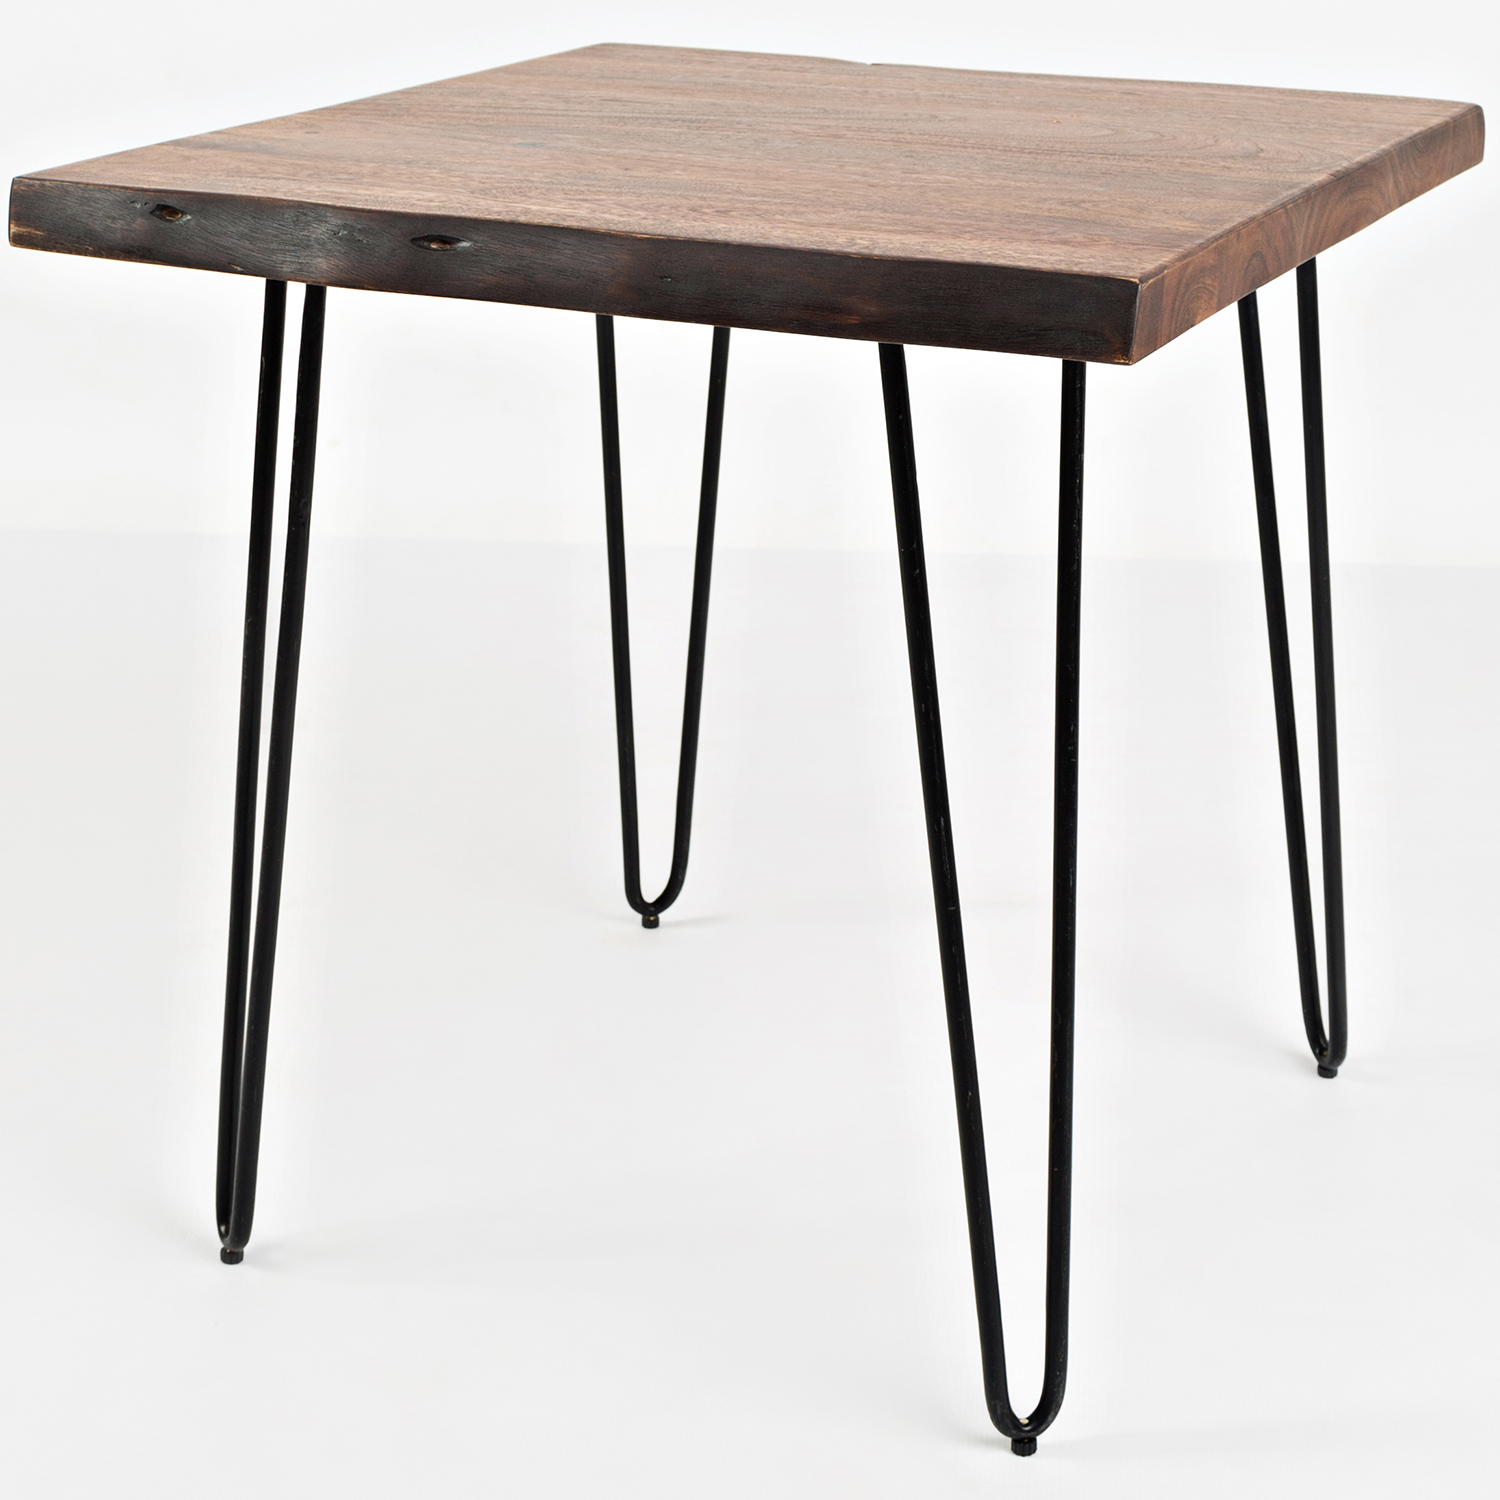 Natureu0027s Edge End Table In Live Edge Acacia On Iron Hairpin Legs